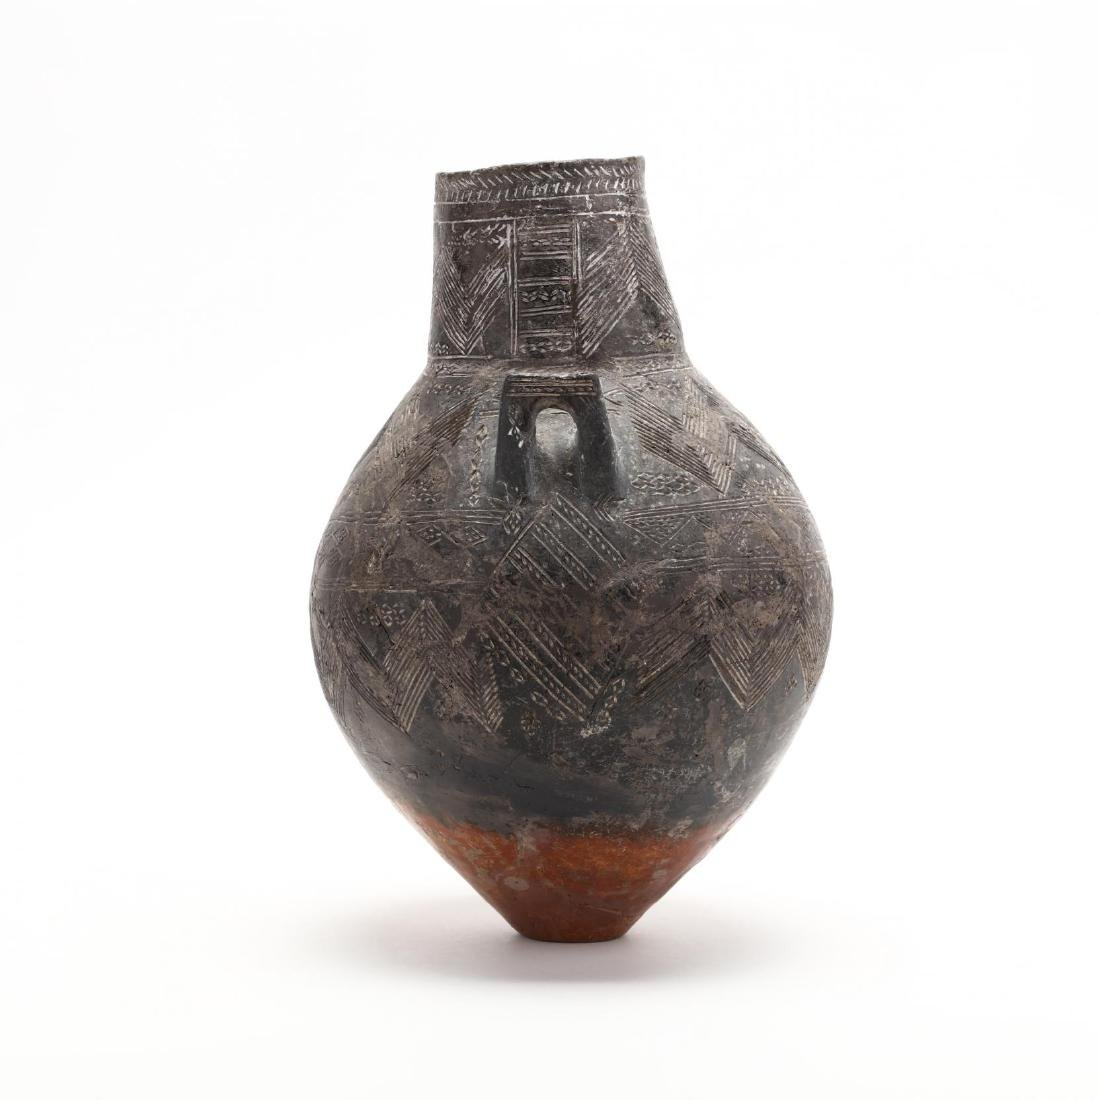 Cypriot Bronze Age Polished Red and Black Ware Amphora - 3